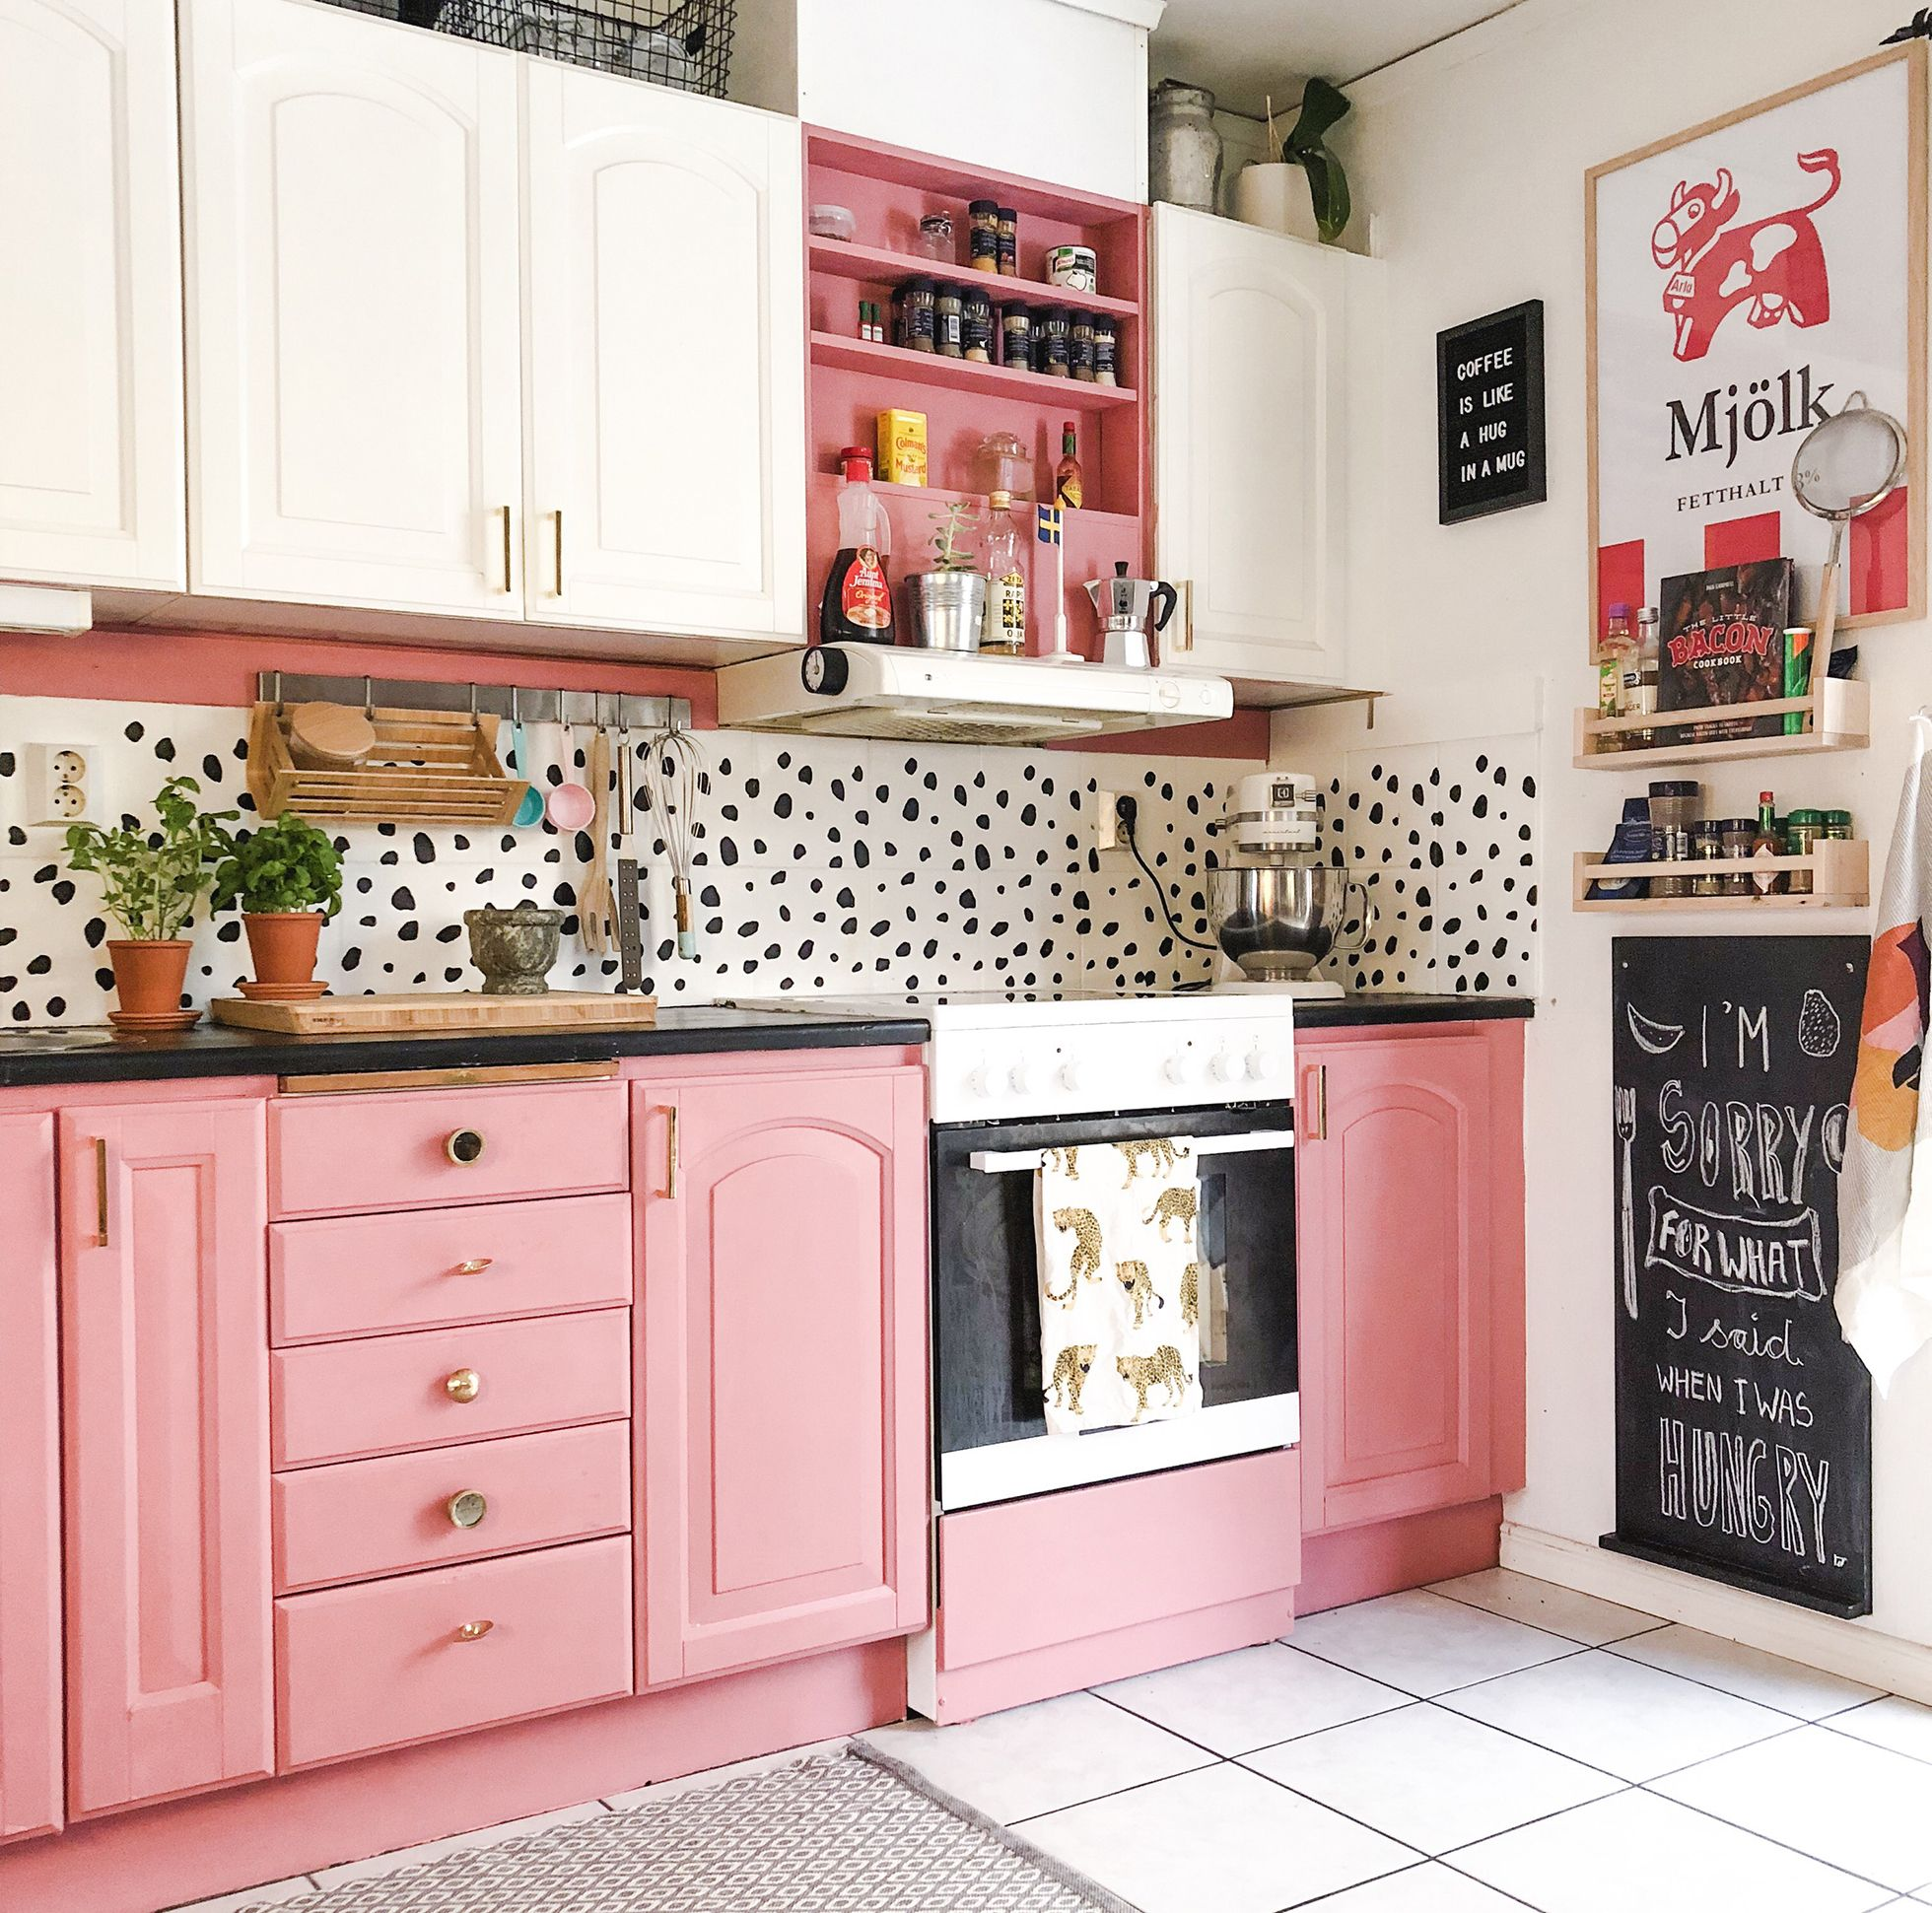 Our Kitchen Remodel Worksheet Answers The Big Question How Much Does It Cost To Remodel A Kitchen Even Better In 2020 Cheap Home Decor House Interior House Design